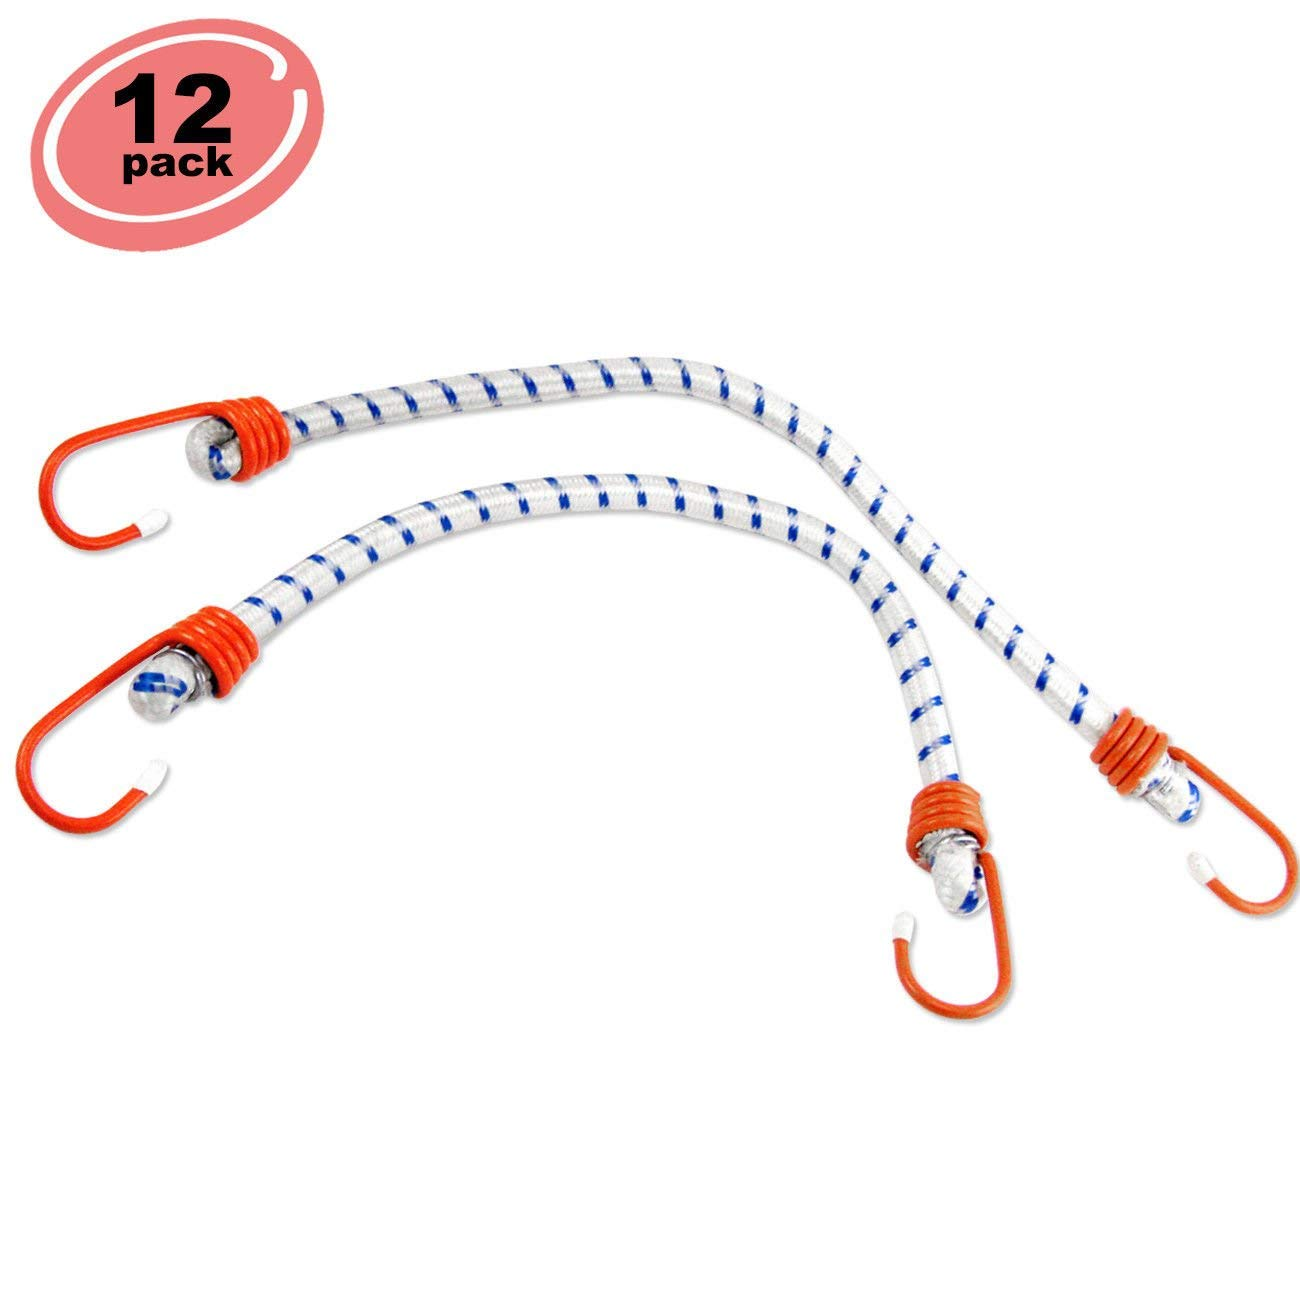 "ESKALEX>>12pc Bungee Cord 24"" inch Heavy Duty Straps 2 Hooks Tie Down Set and Bungee Cord Heavy Duty 24"" 12 Big Bungee Cords for Securing Over-Sized Loads Or Wrapping Big Bundles Heavy-Duty Multi-str"